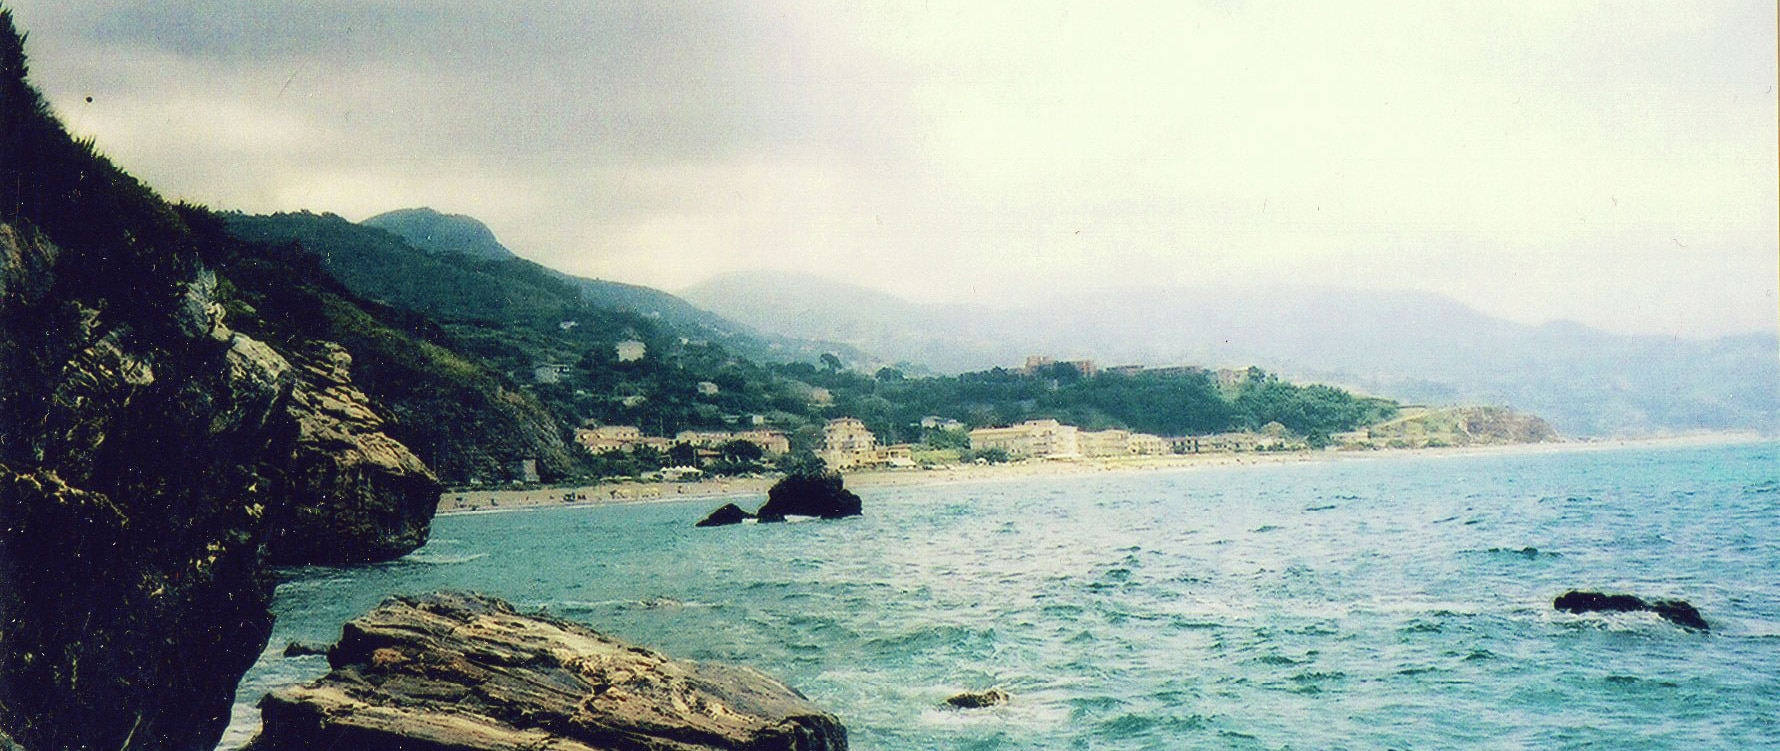 Behind The Book: Cetraro, Calabria, Southern Italy